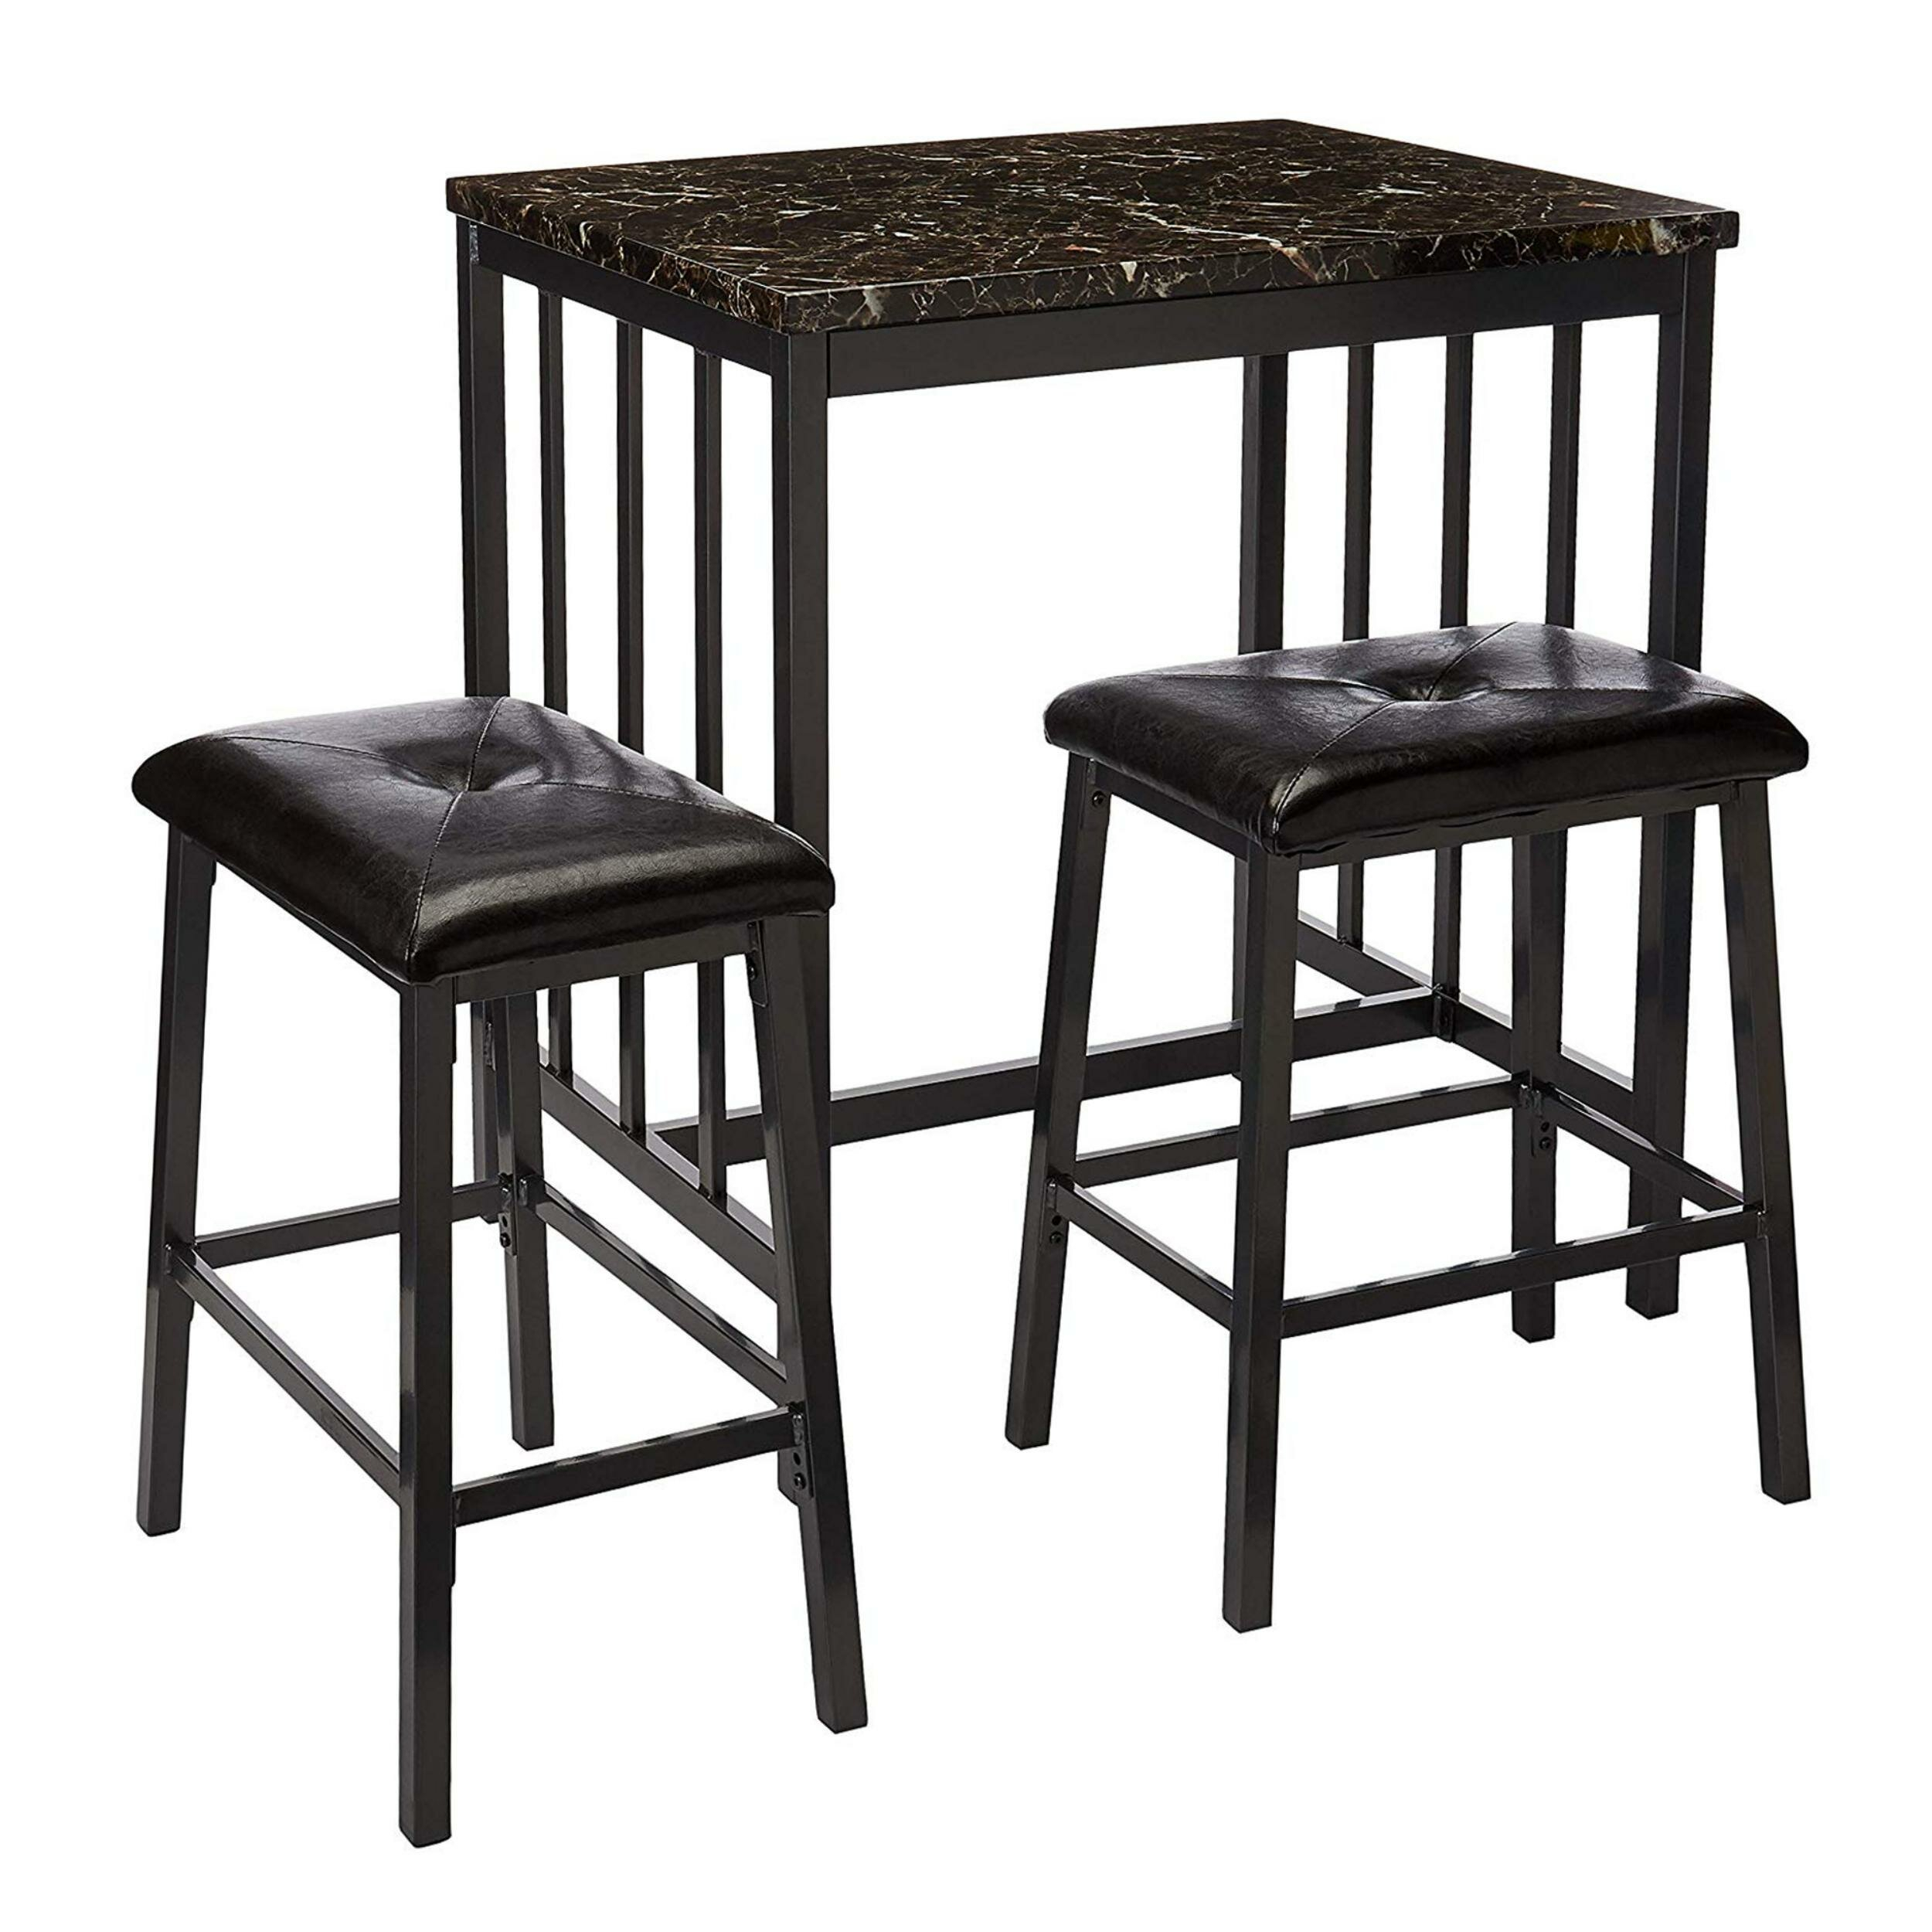 Presson 3 Piece Counter Height Dining Set Throughout 2018 Mizpah 3 Piece Counter Height Dining Sets (View 5 of 20)